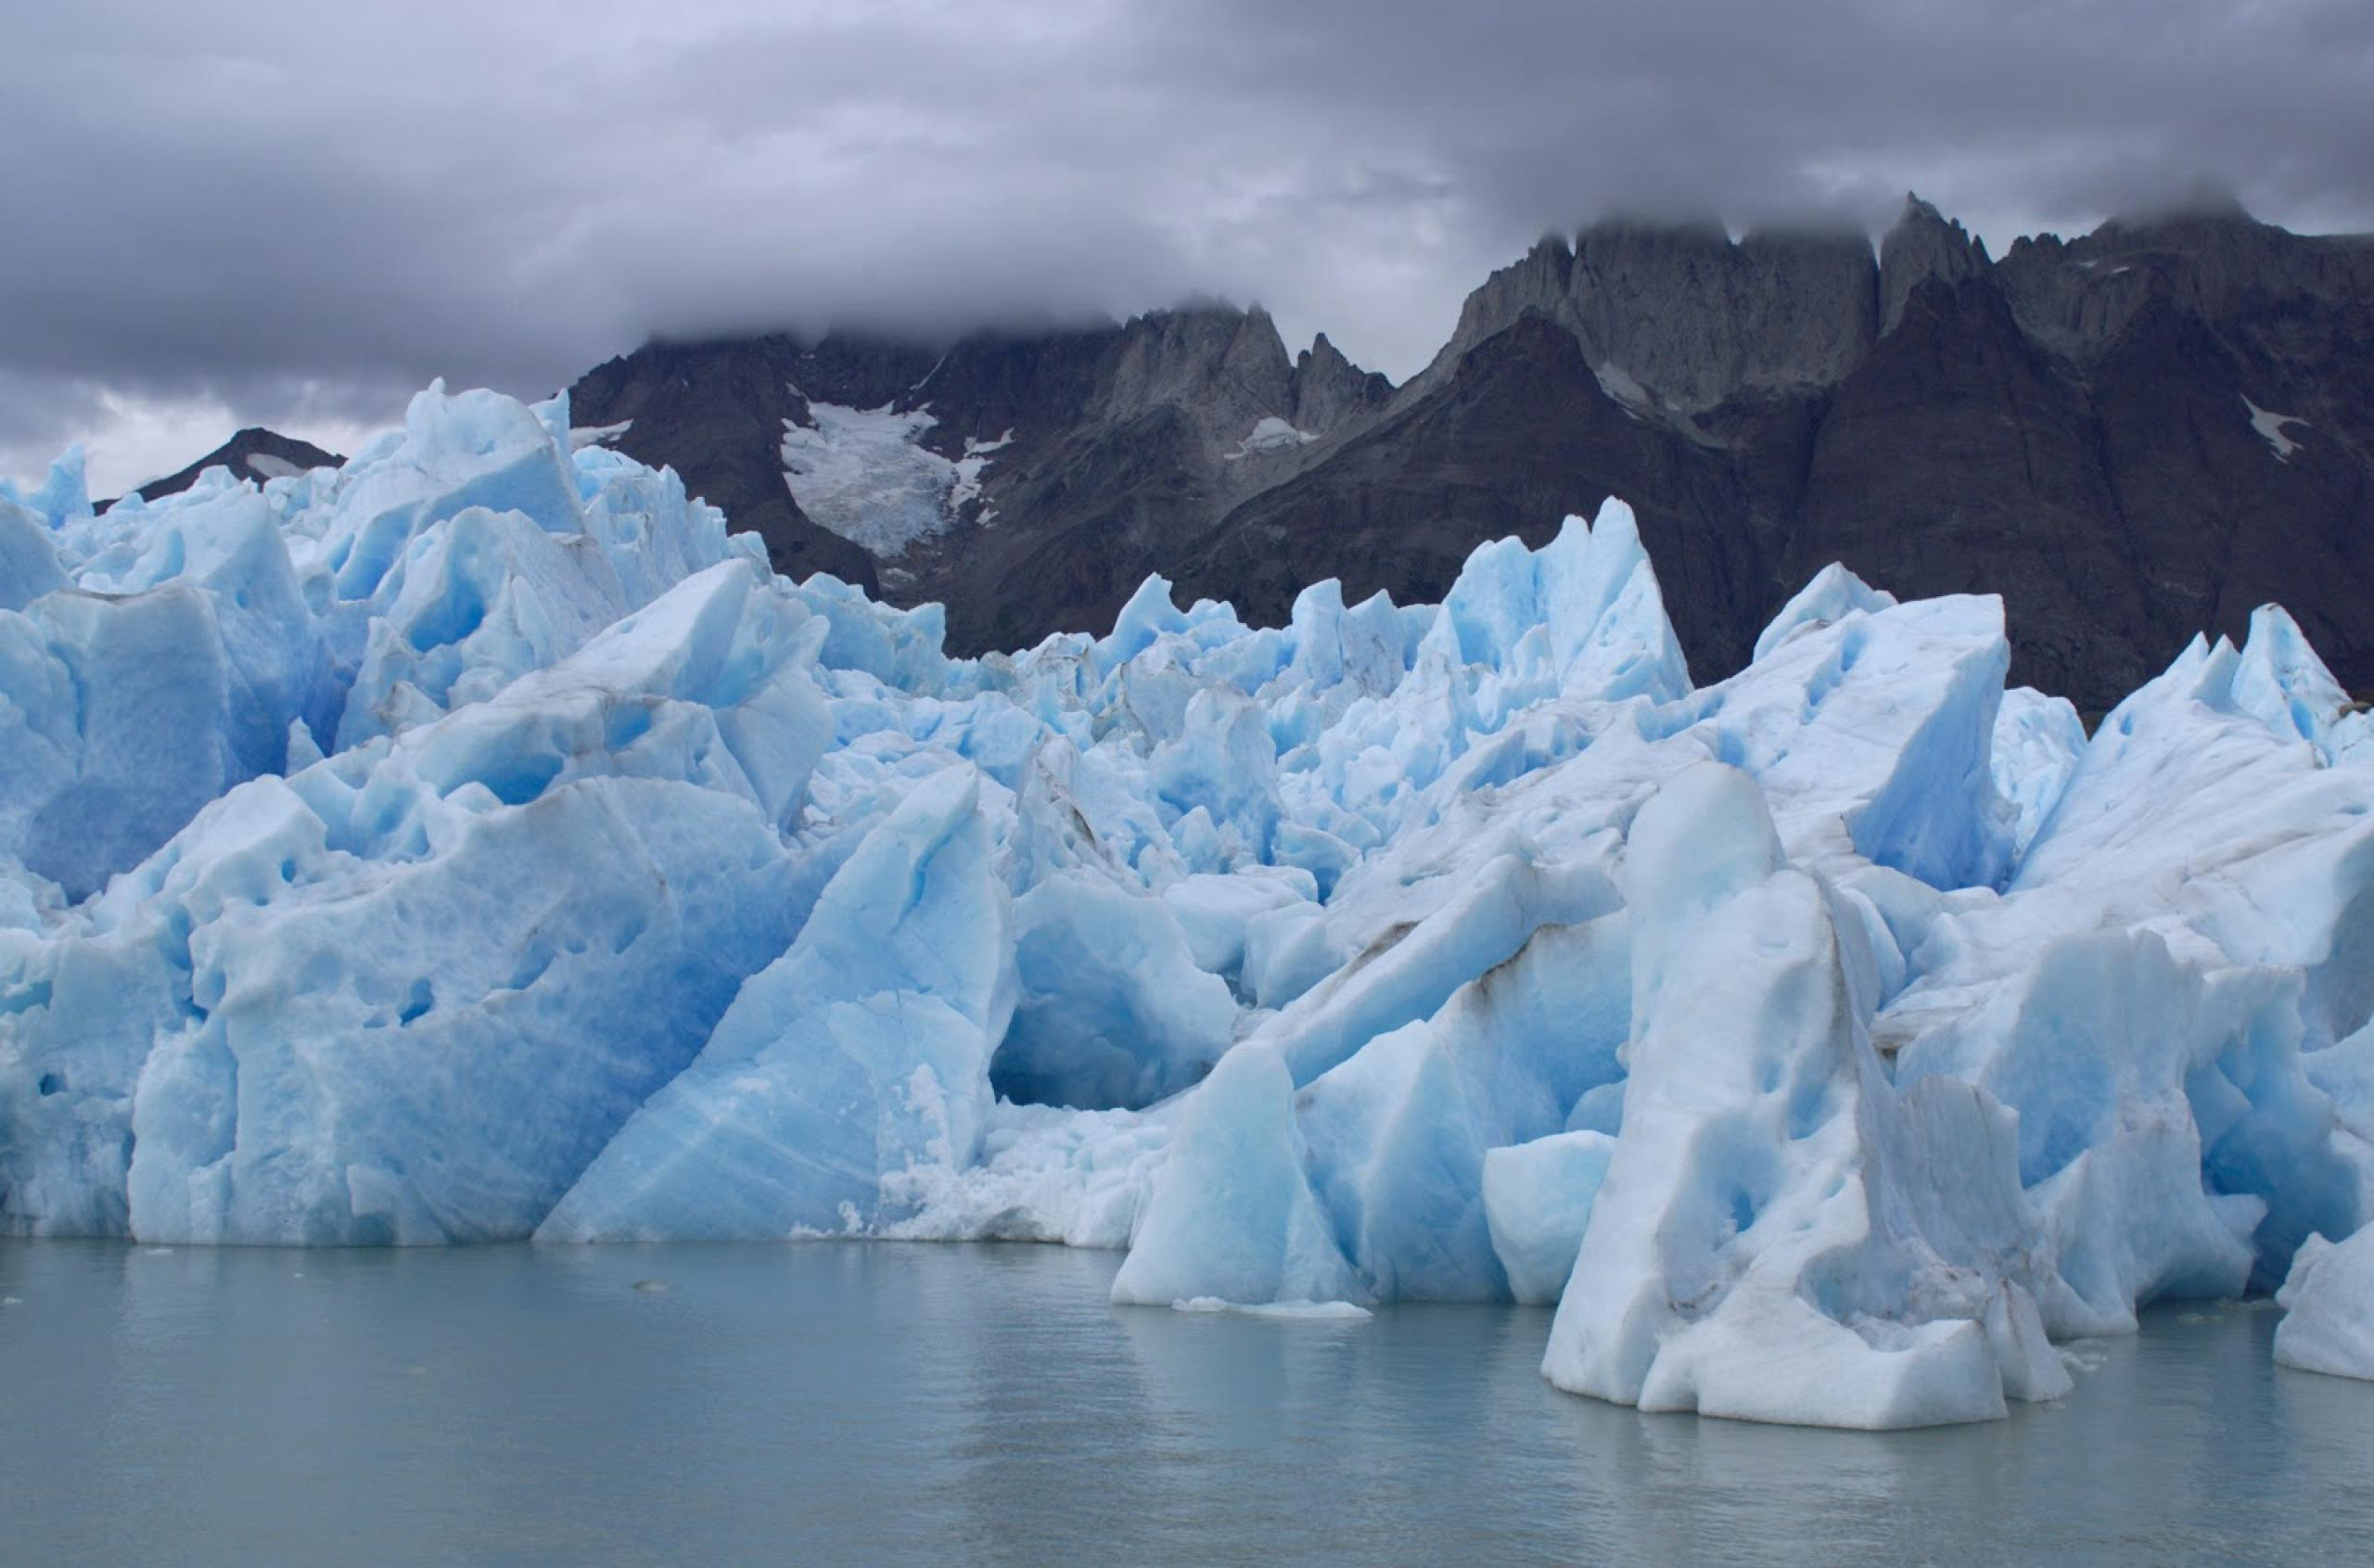 Photo of glacier ice in ocean with land in the background